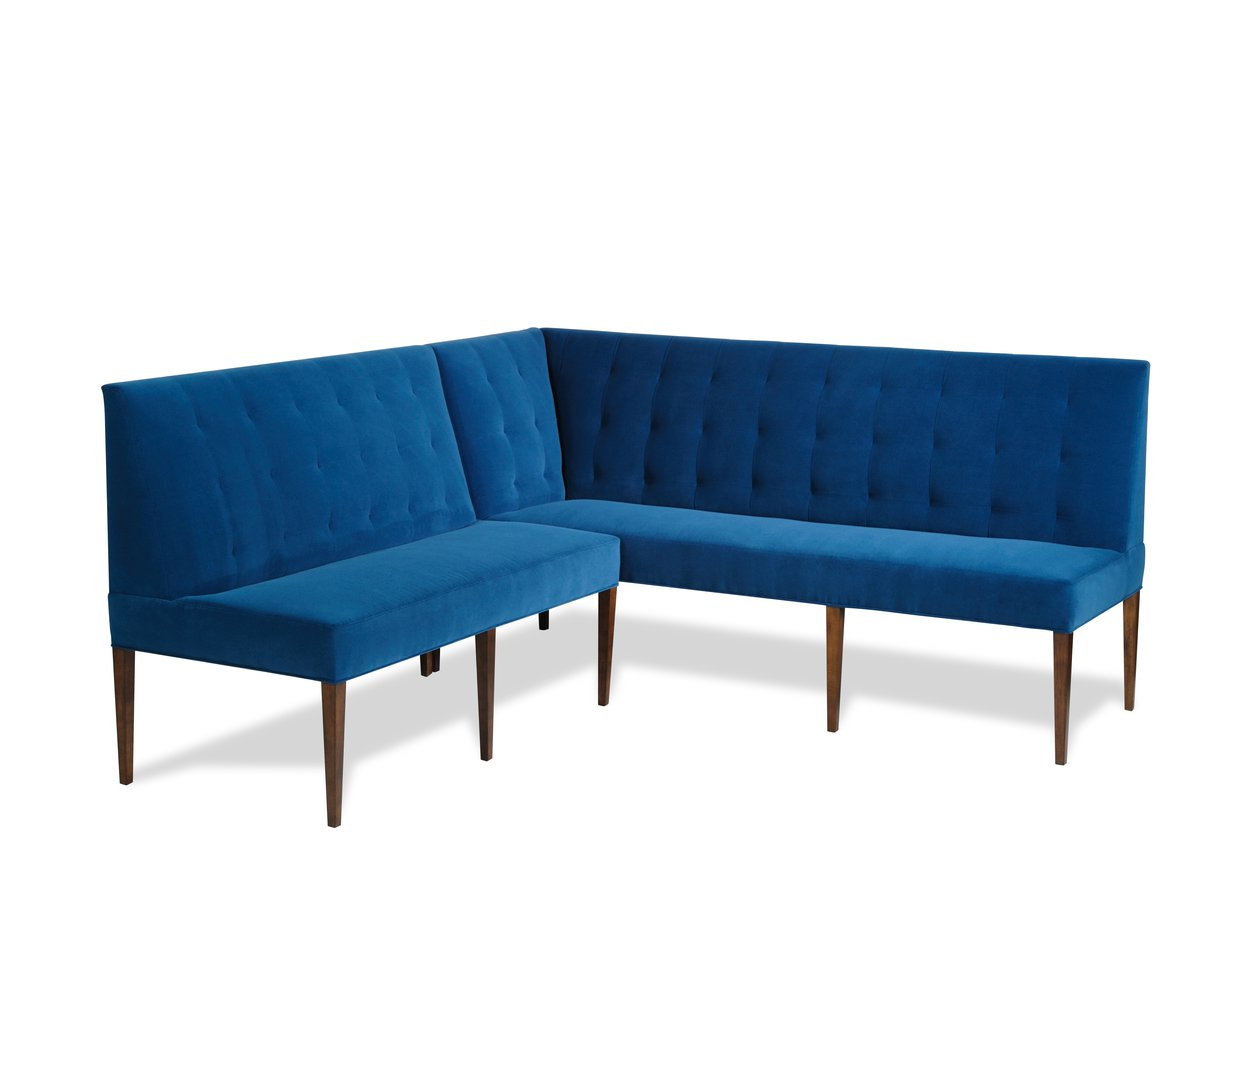 Taylor Made Dining Sectional Banquette Image